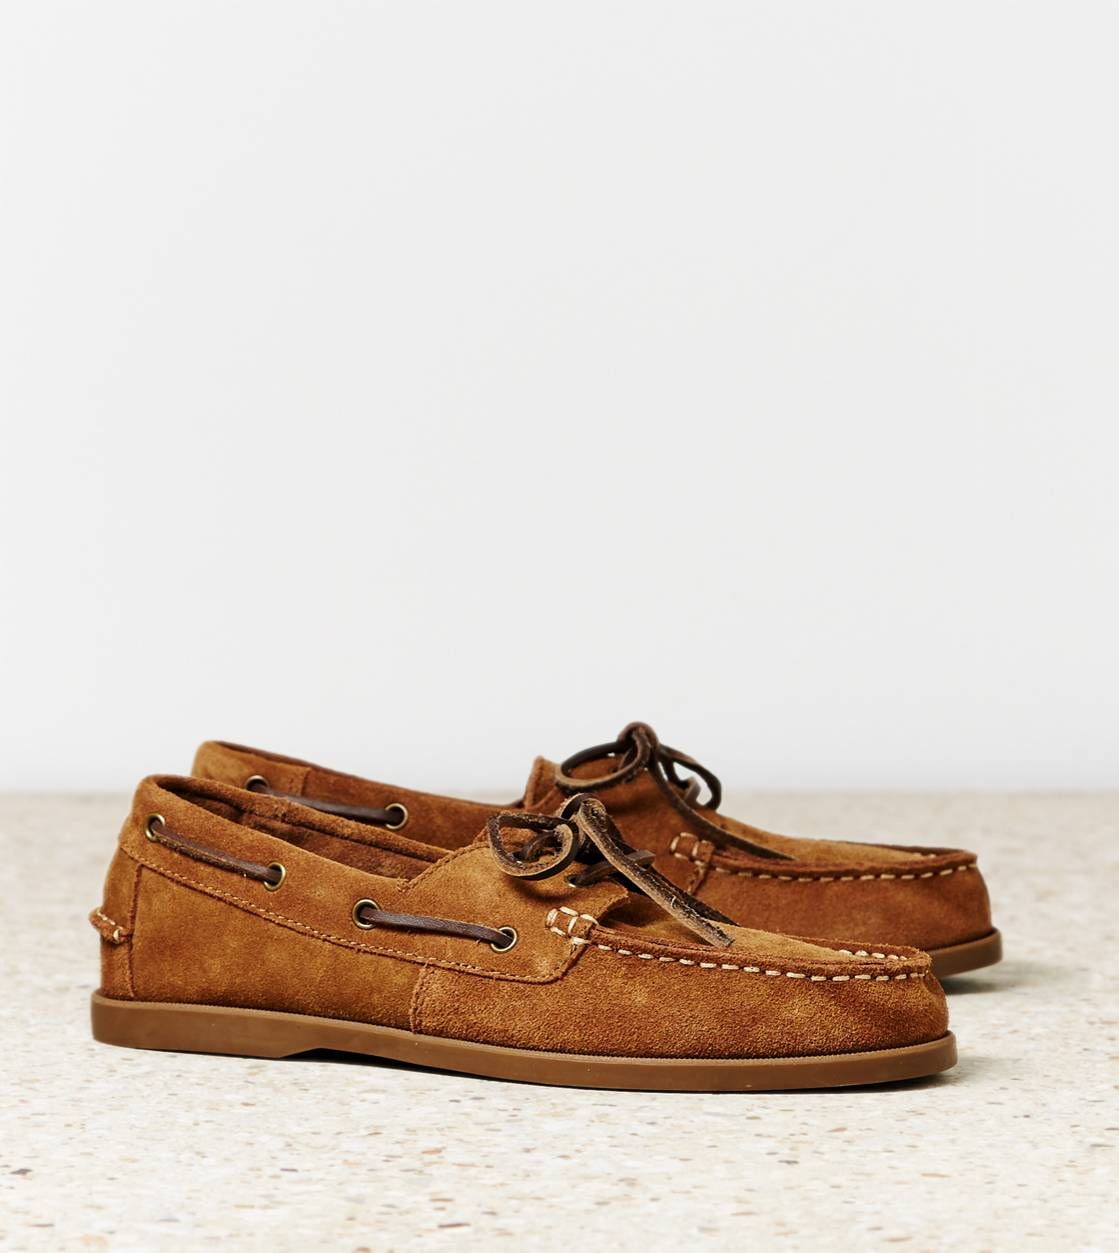 AEO Suede Boat Shoe | Boat shoes mens